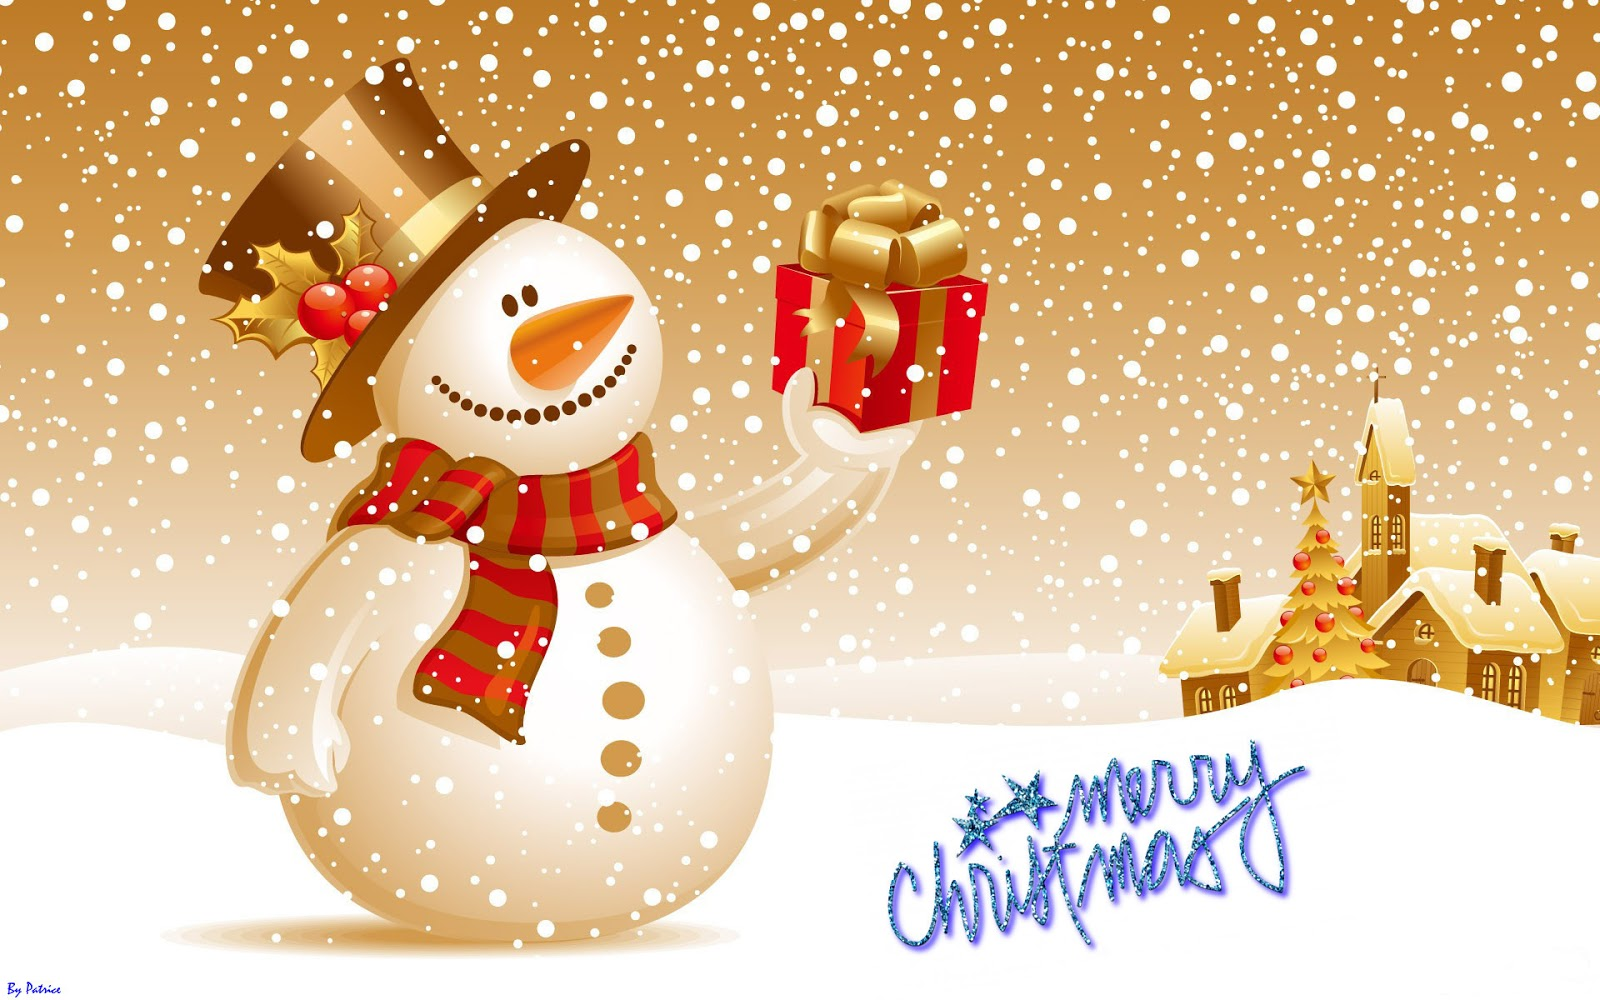 Muslims And Merry Christmas Wishes Free Hd Wallpapers For Desktop